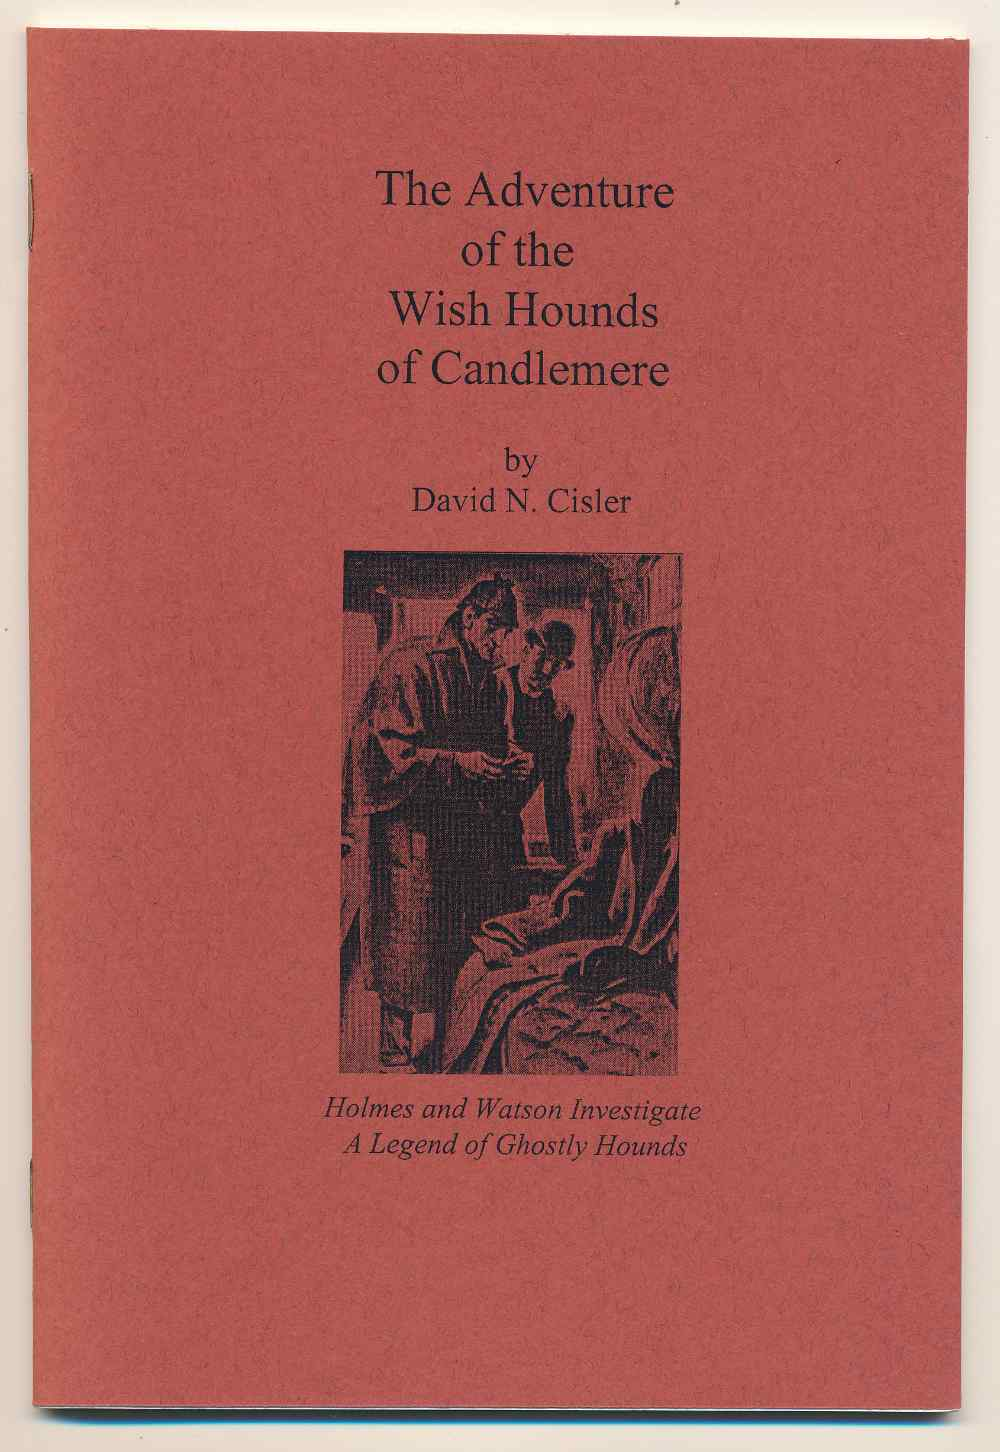 The adventure of the wish hounds of Candlemere